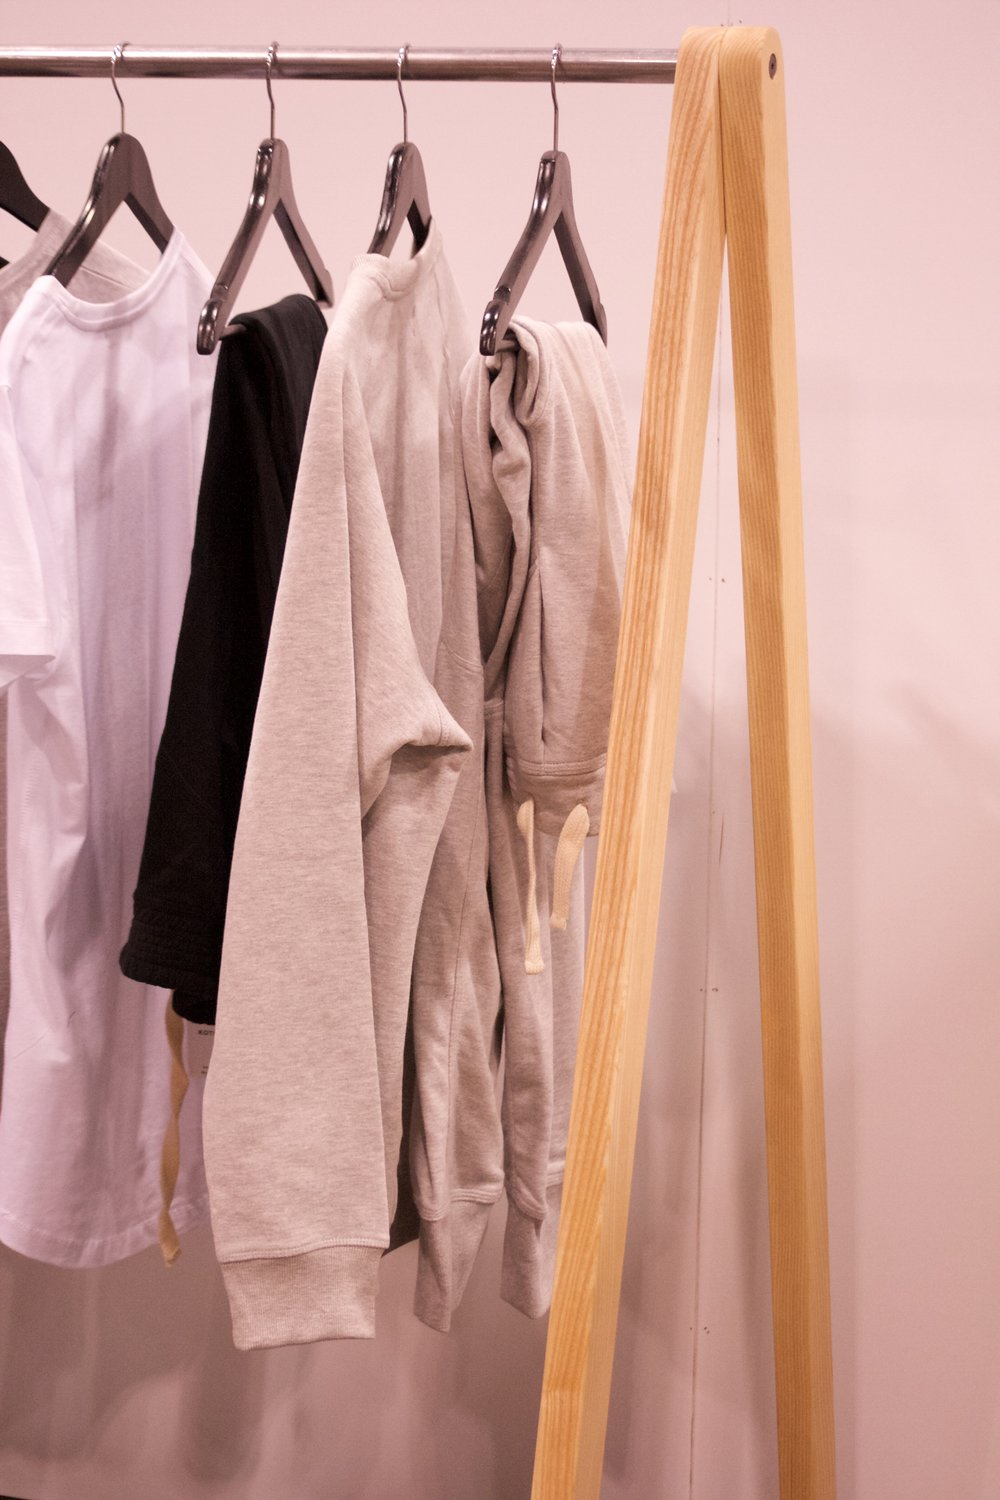 Clothes Rack on Display